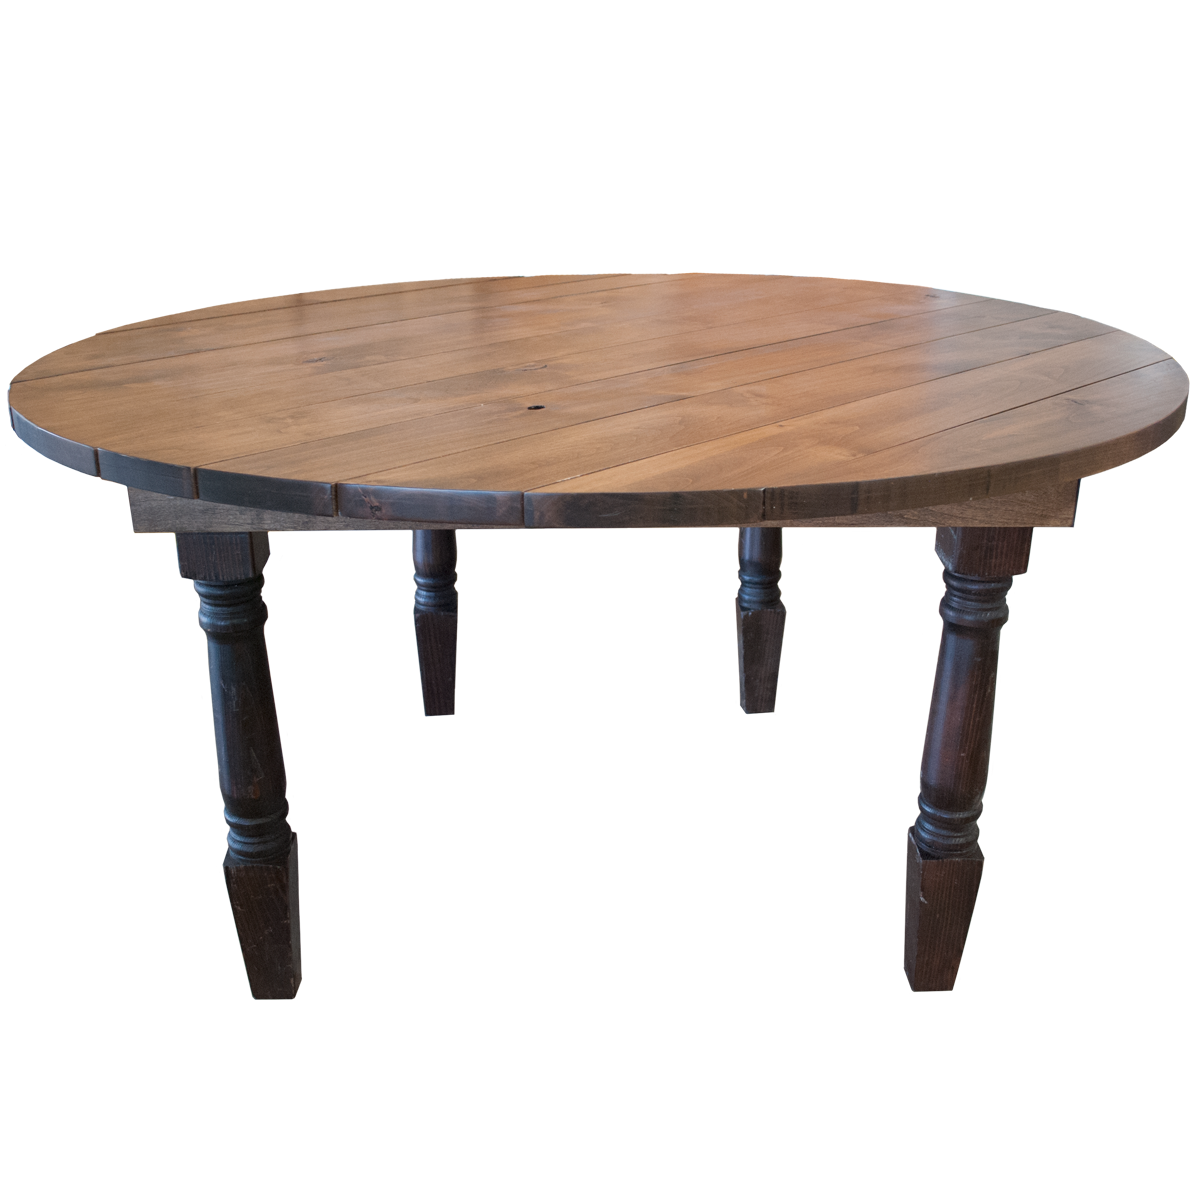 Walnut Stained Farm Style Round Table